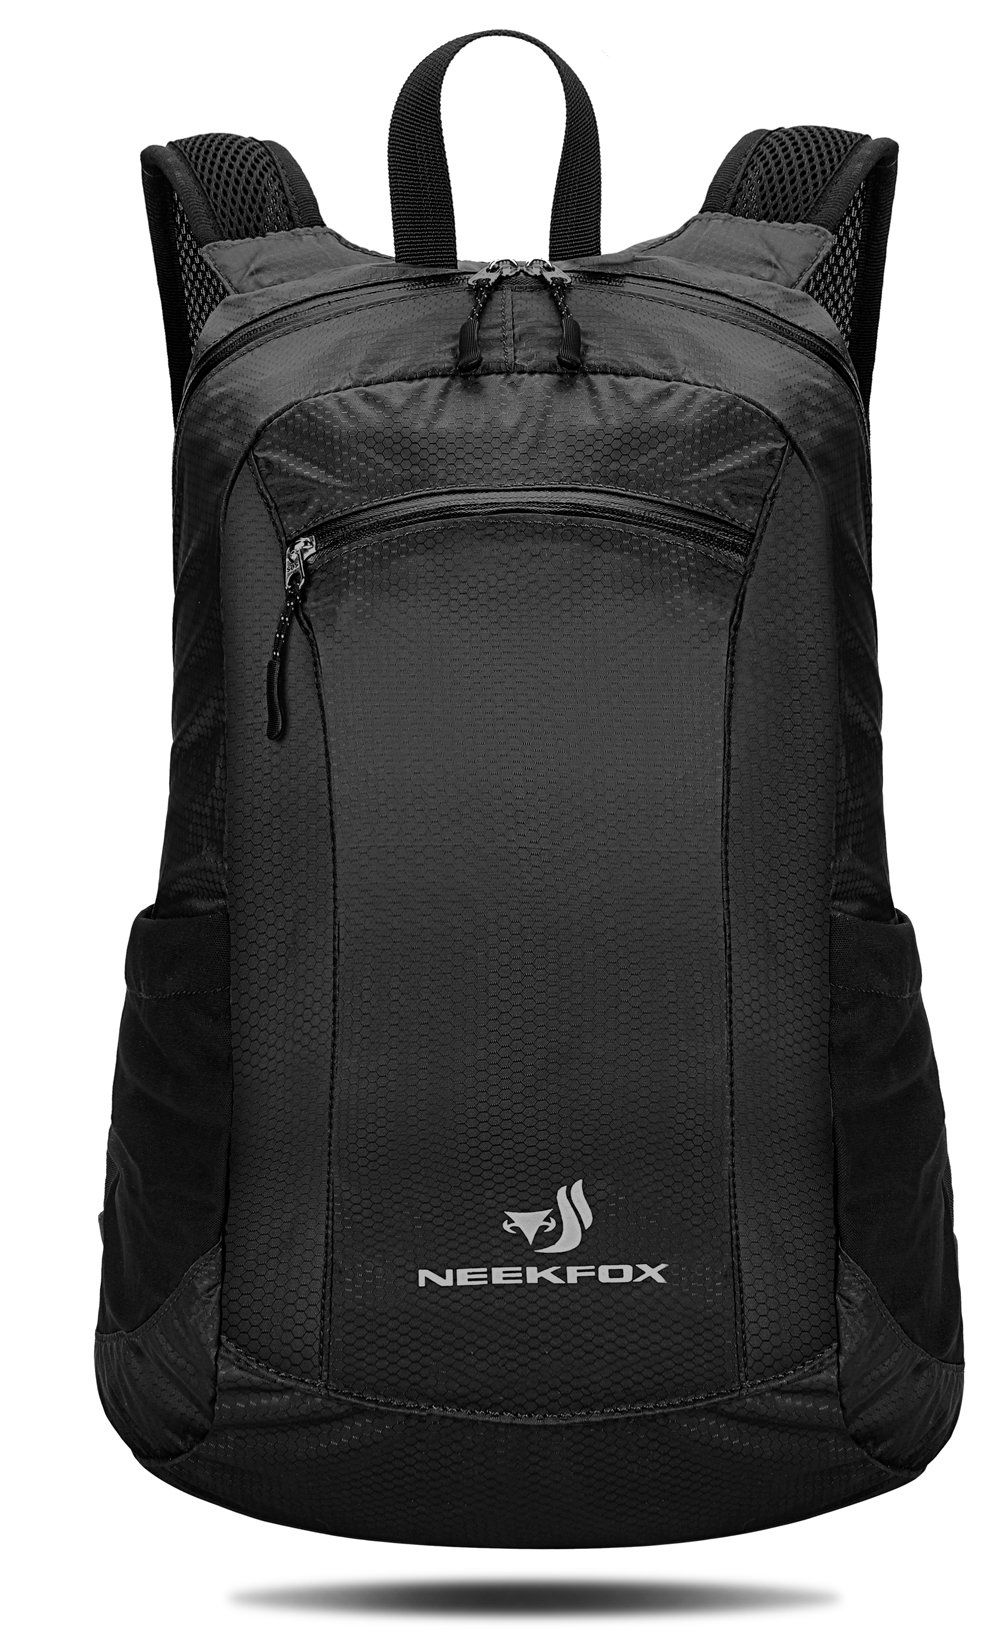 453169a66874 NEEKFOX 20L Packable Lightweight Travel Hiking Backpack Small Water  Resistant Hiking Daypack (01.Black